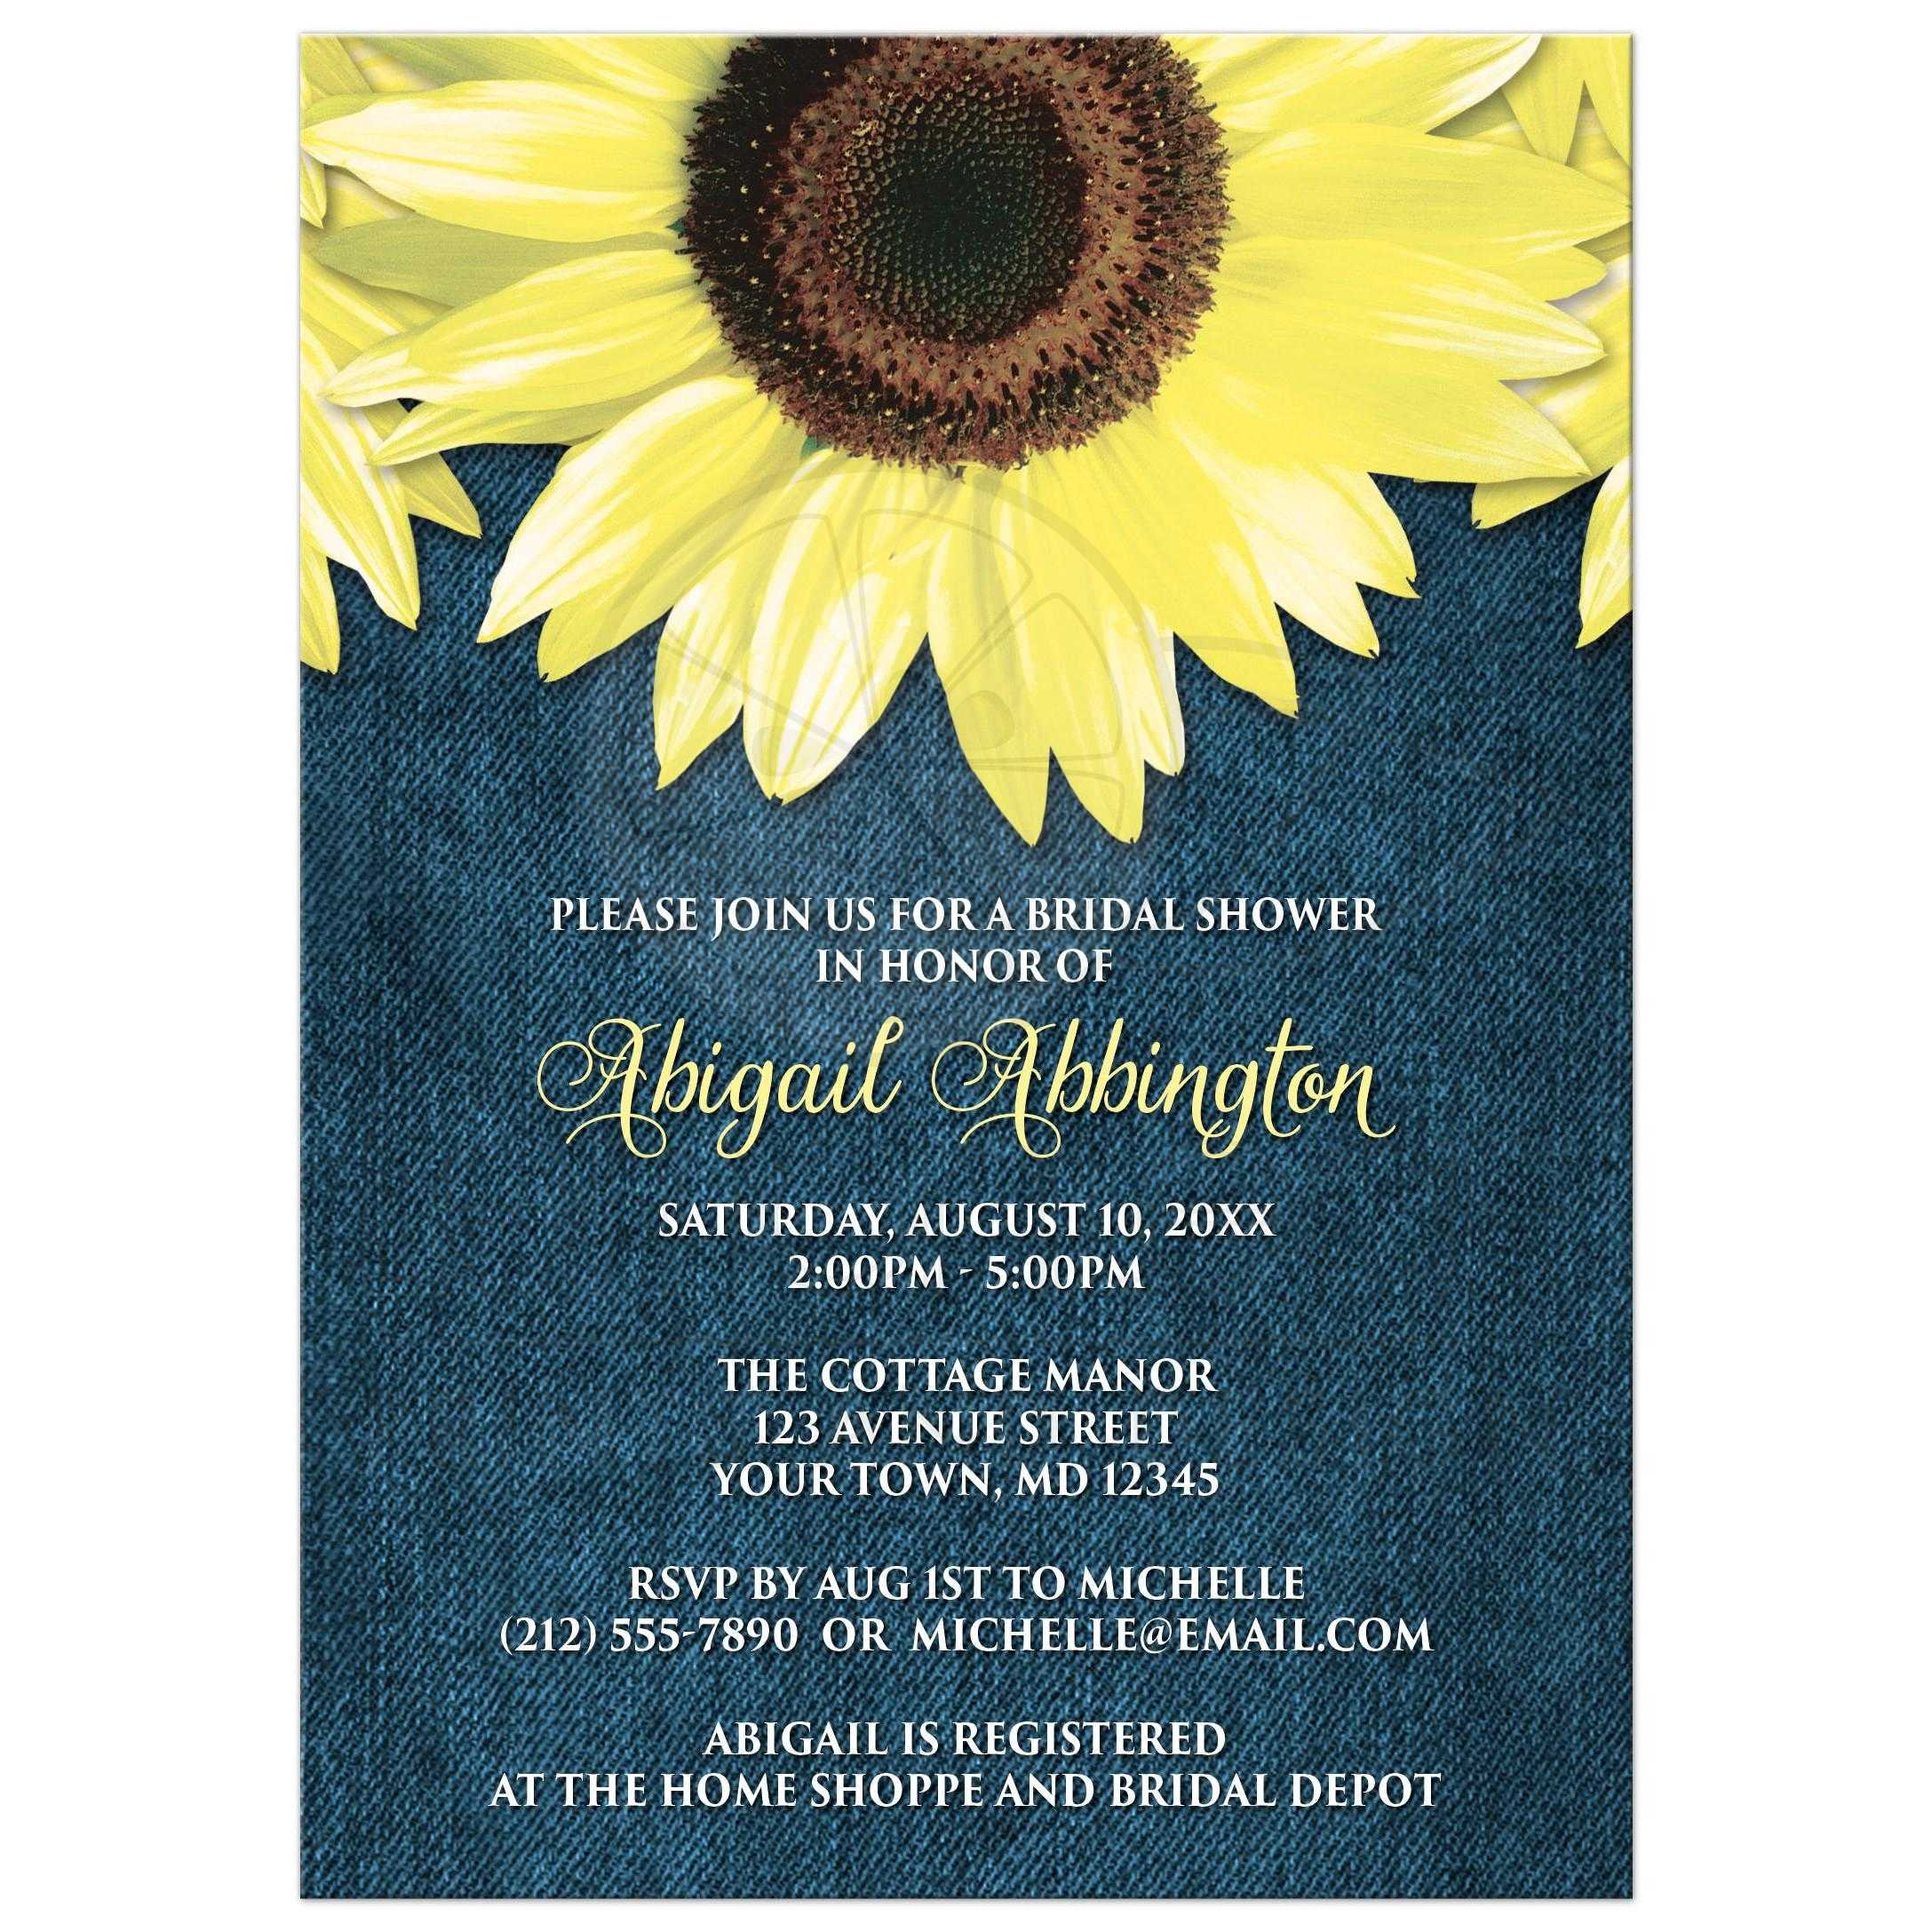 Shower invitations rustic sunflower and denim bridal shower invitations rustic sunflower and denim filmwisefo Images